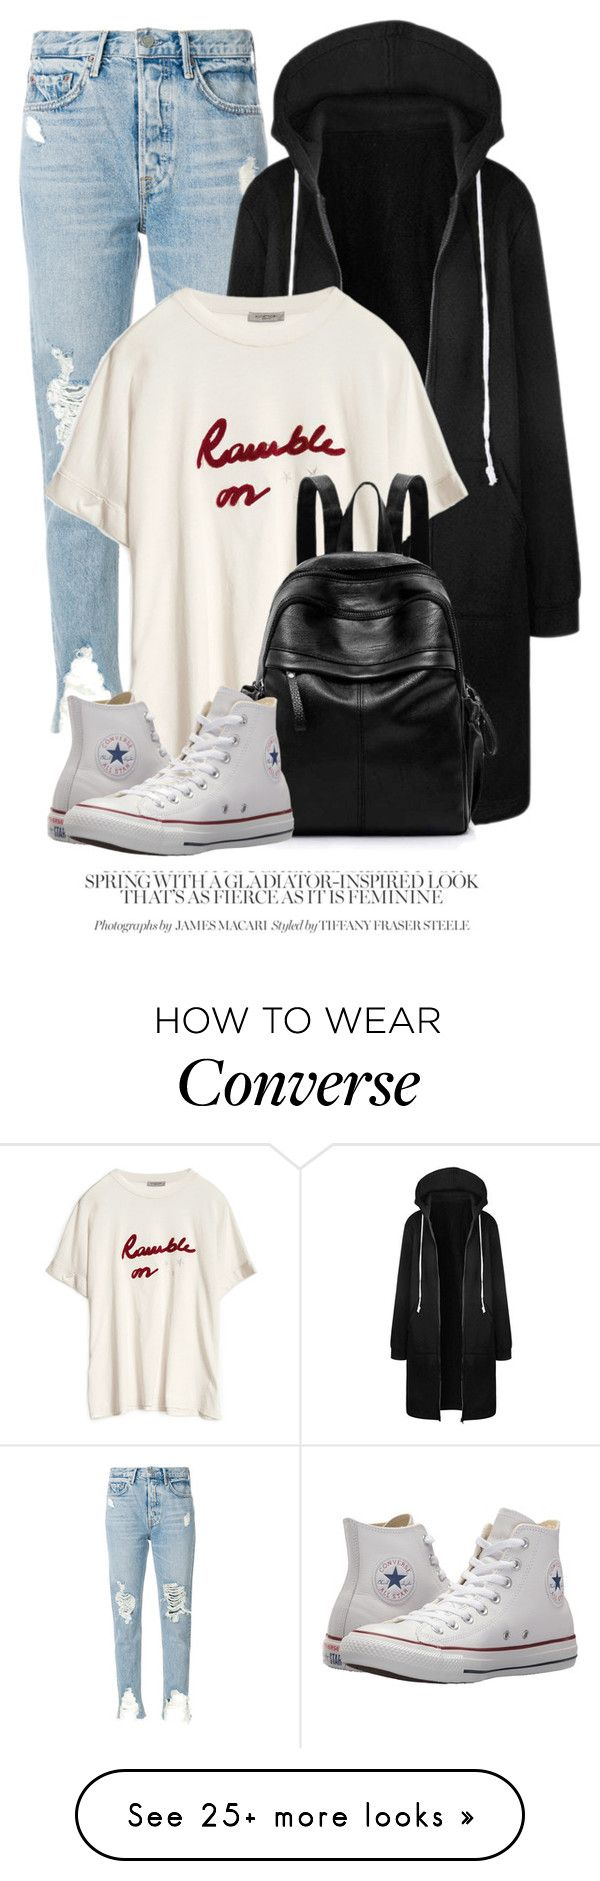 """""""20:54"""" by monmondefou on Polyvore featuring GRLFRND and Converse"""